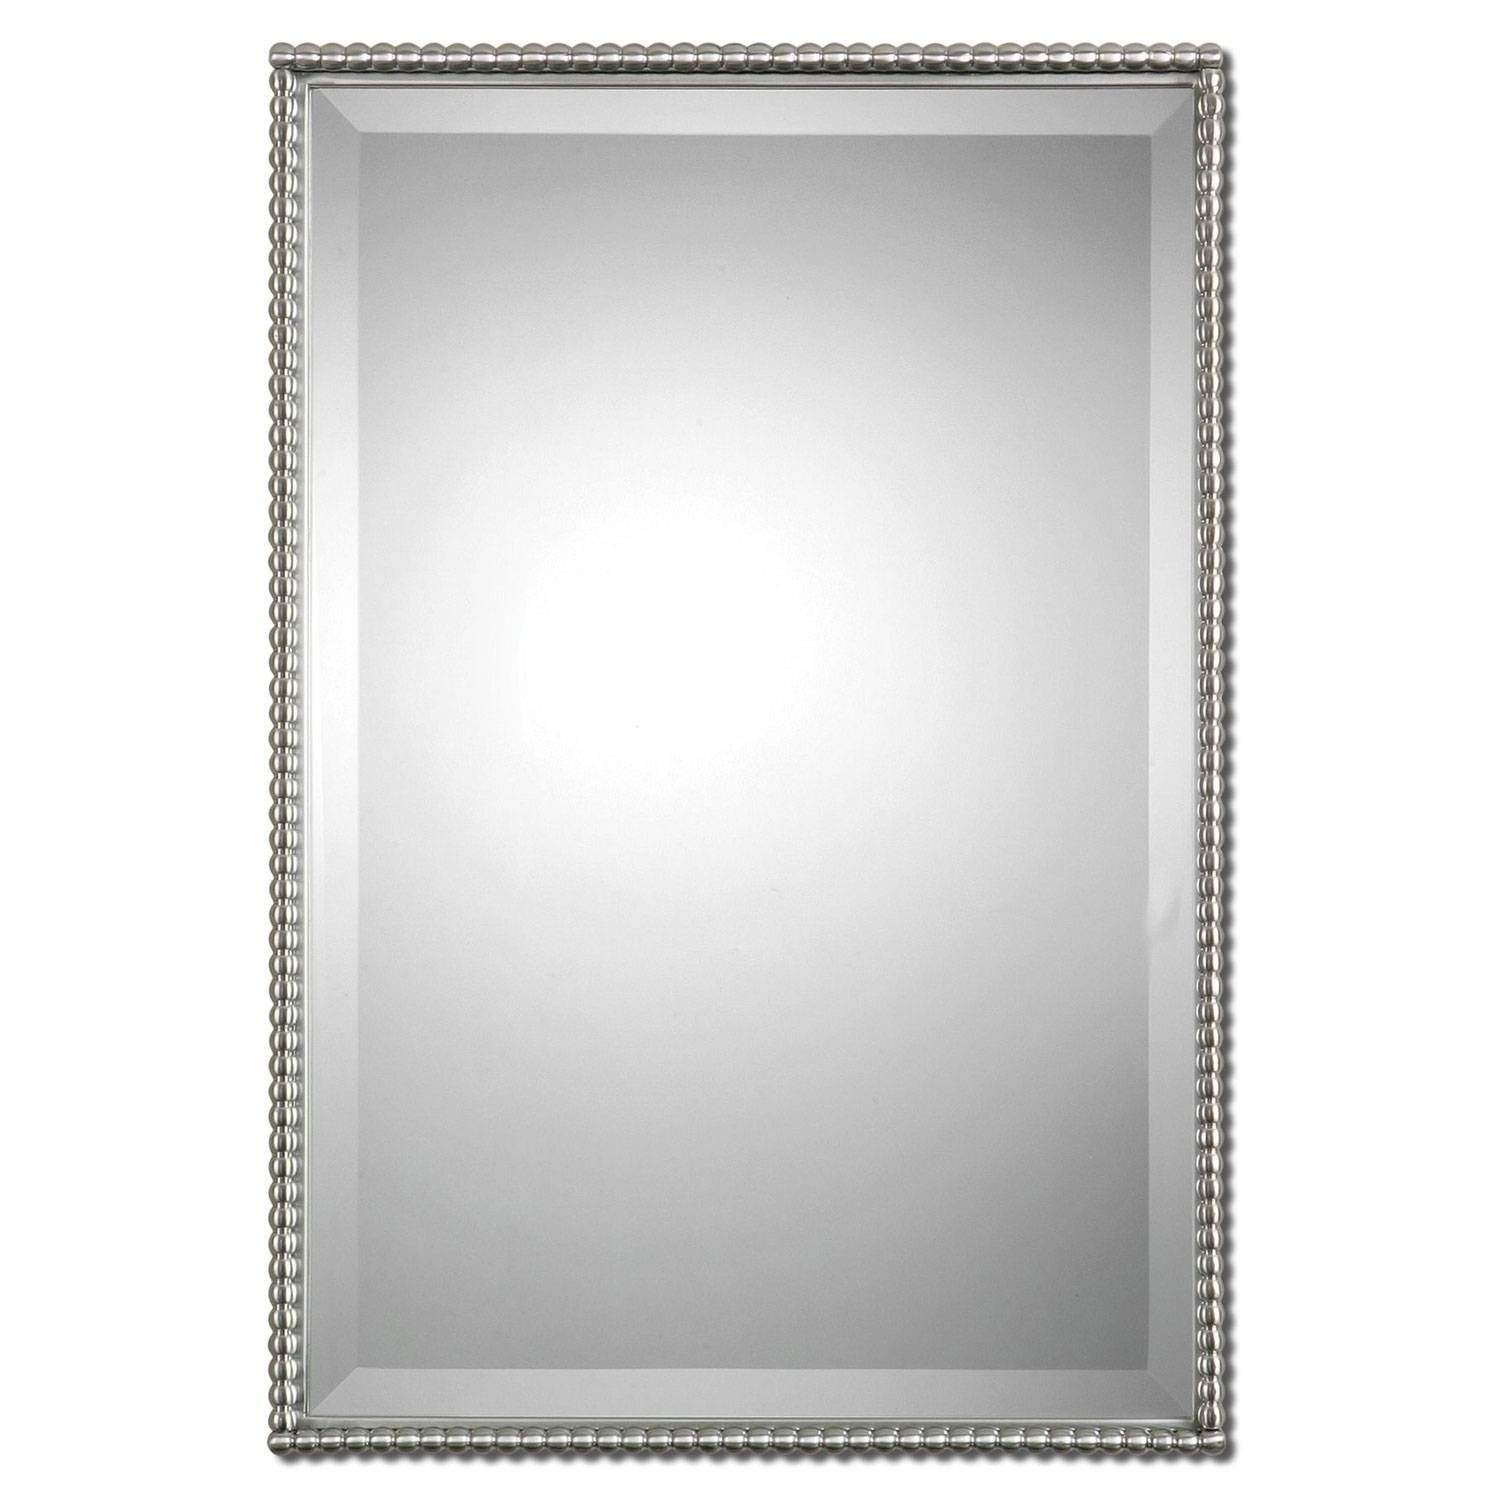 Wall Mirrors, Bathroom Mirrors | Bellacor intended for Iron Framed Mirrors (Image 25 of 25)